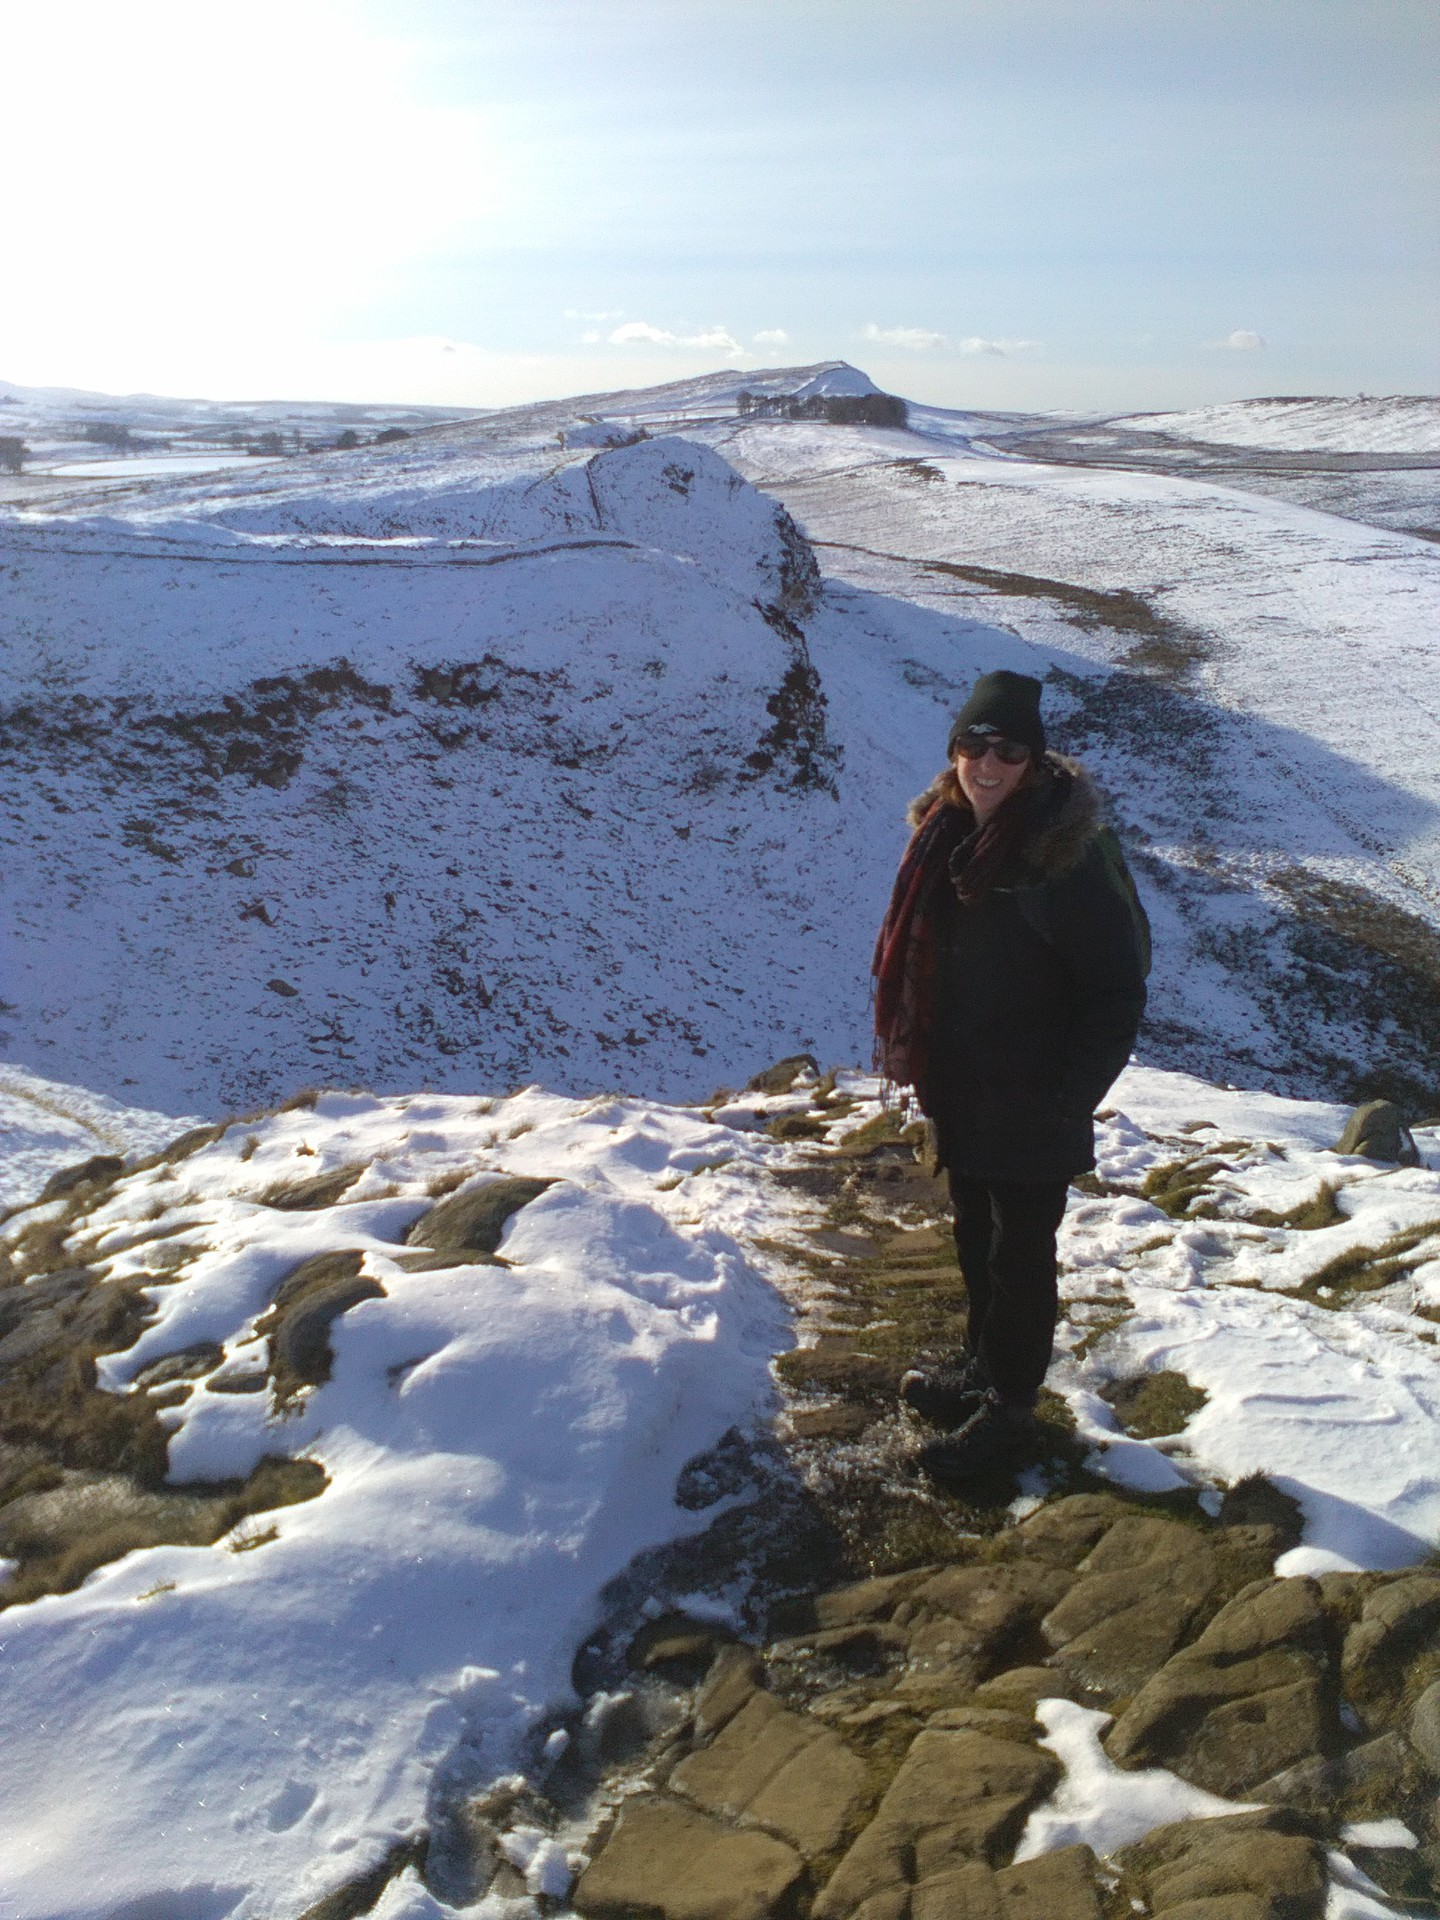 Kim and Andrew crossed Hadrian's Wall, through mud and snow to raise money for Refugee Action.